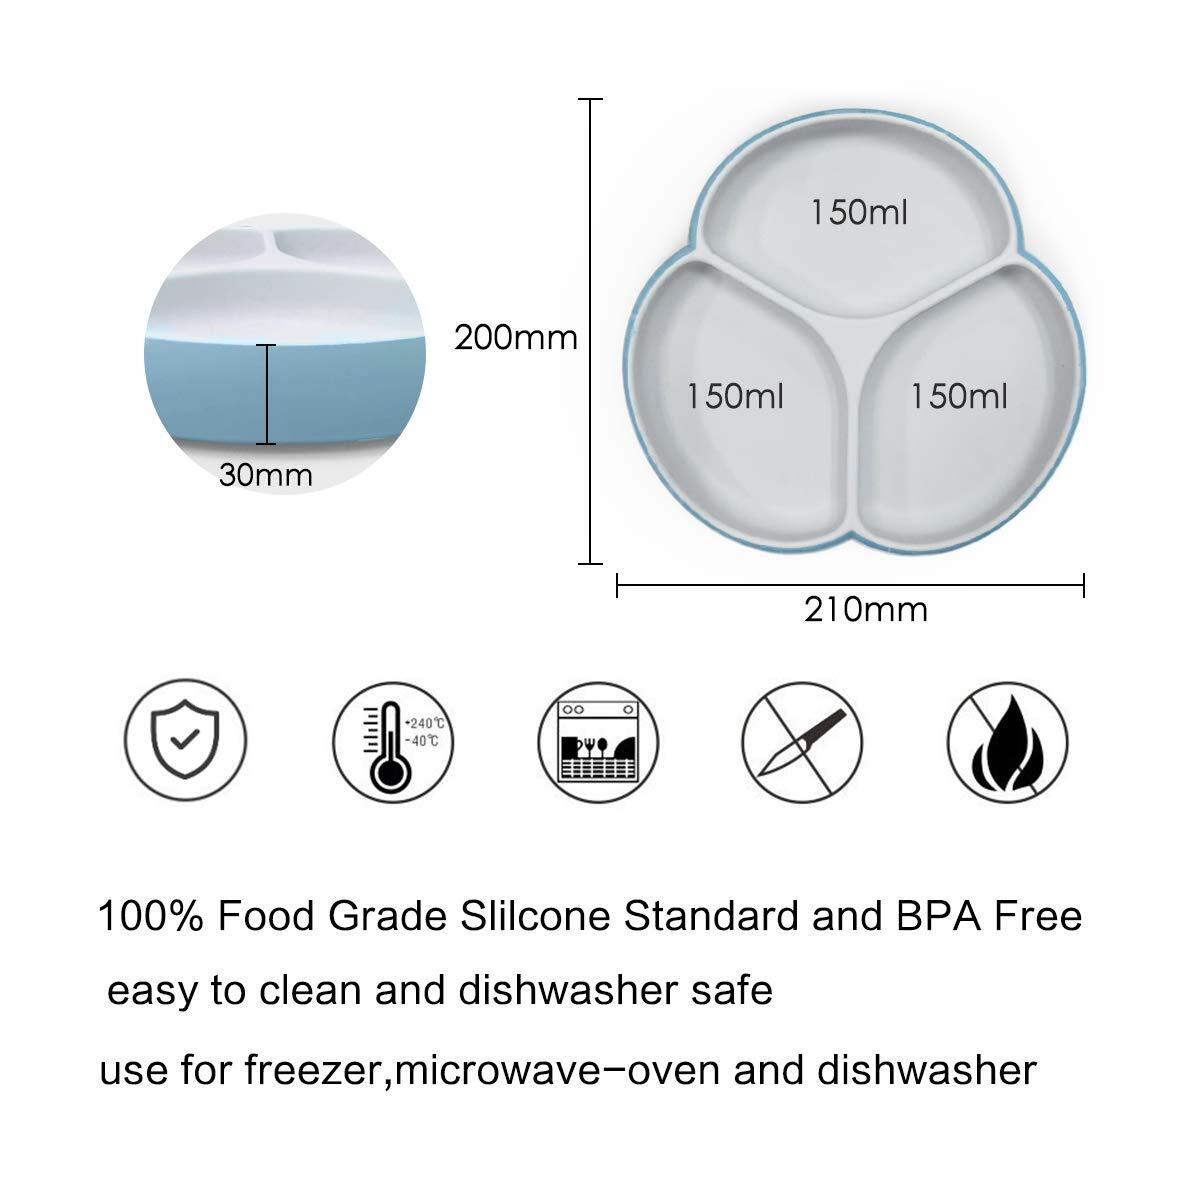 Silicone Suction Baby Plates - SILIVO Non Slip Toddler Plates for Babies, Kids and Children, Microwave & Dishwasher Safe – Blue/Gray